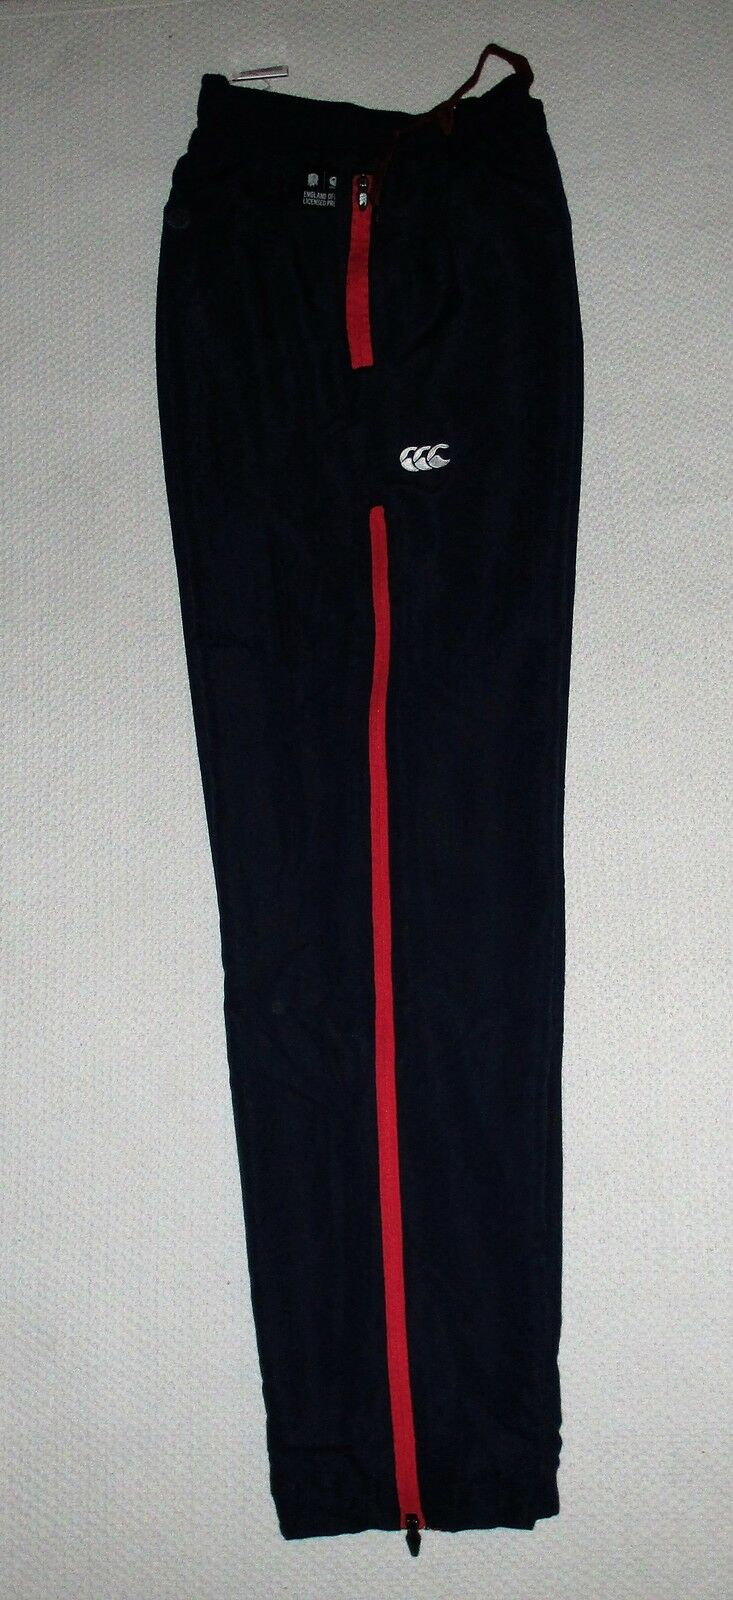 MENS CANTERBURY ENGLAND RUGBY STADIUM PANTS - RRP .99 - SALE 15% OFF